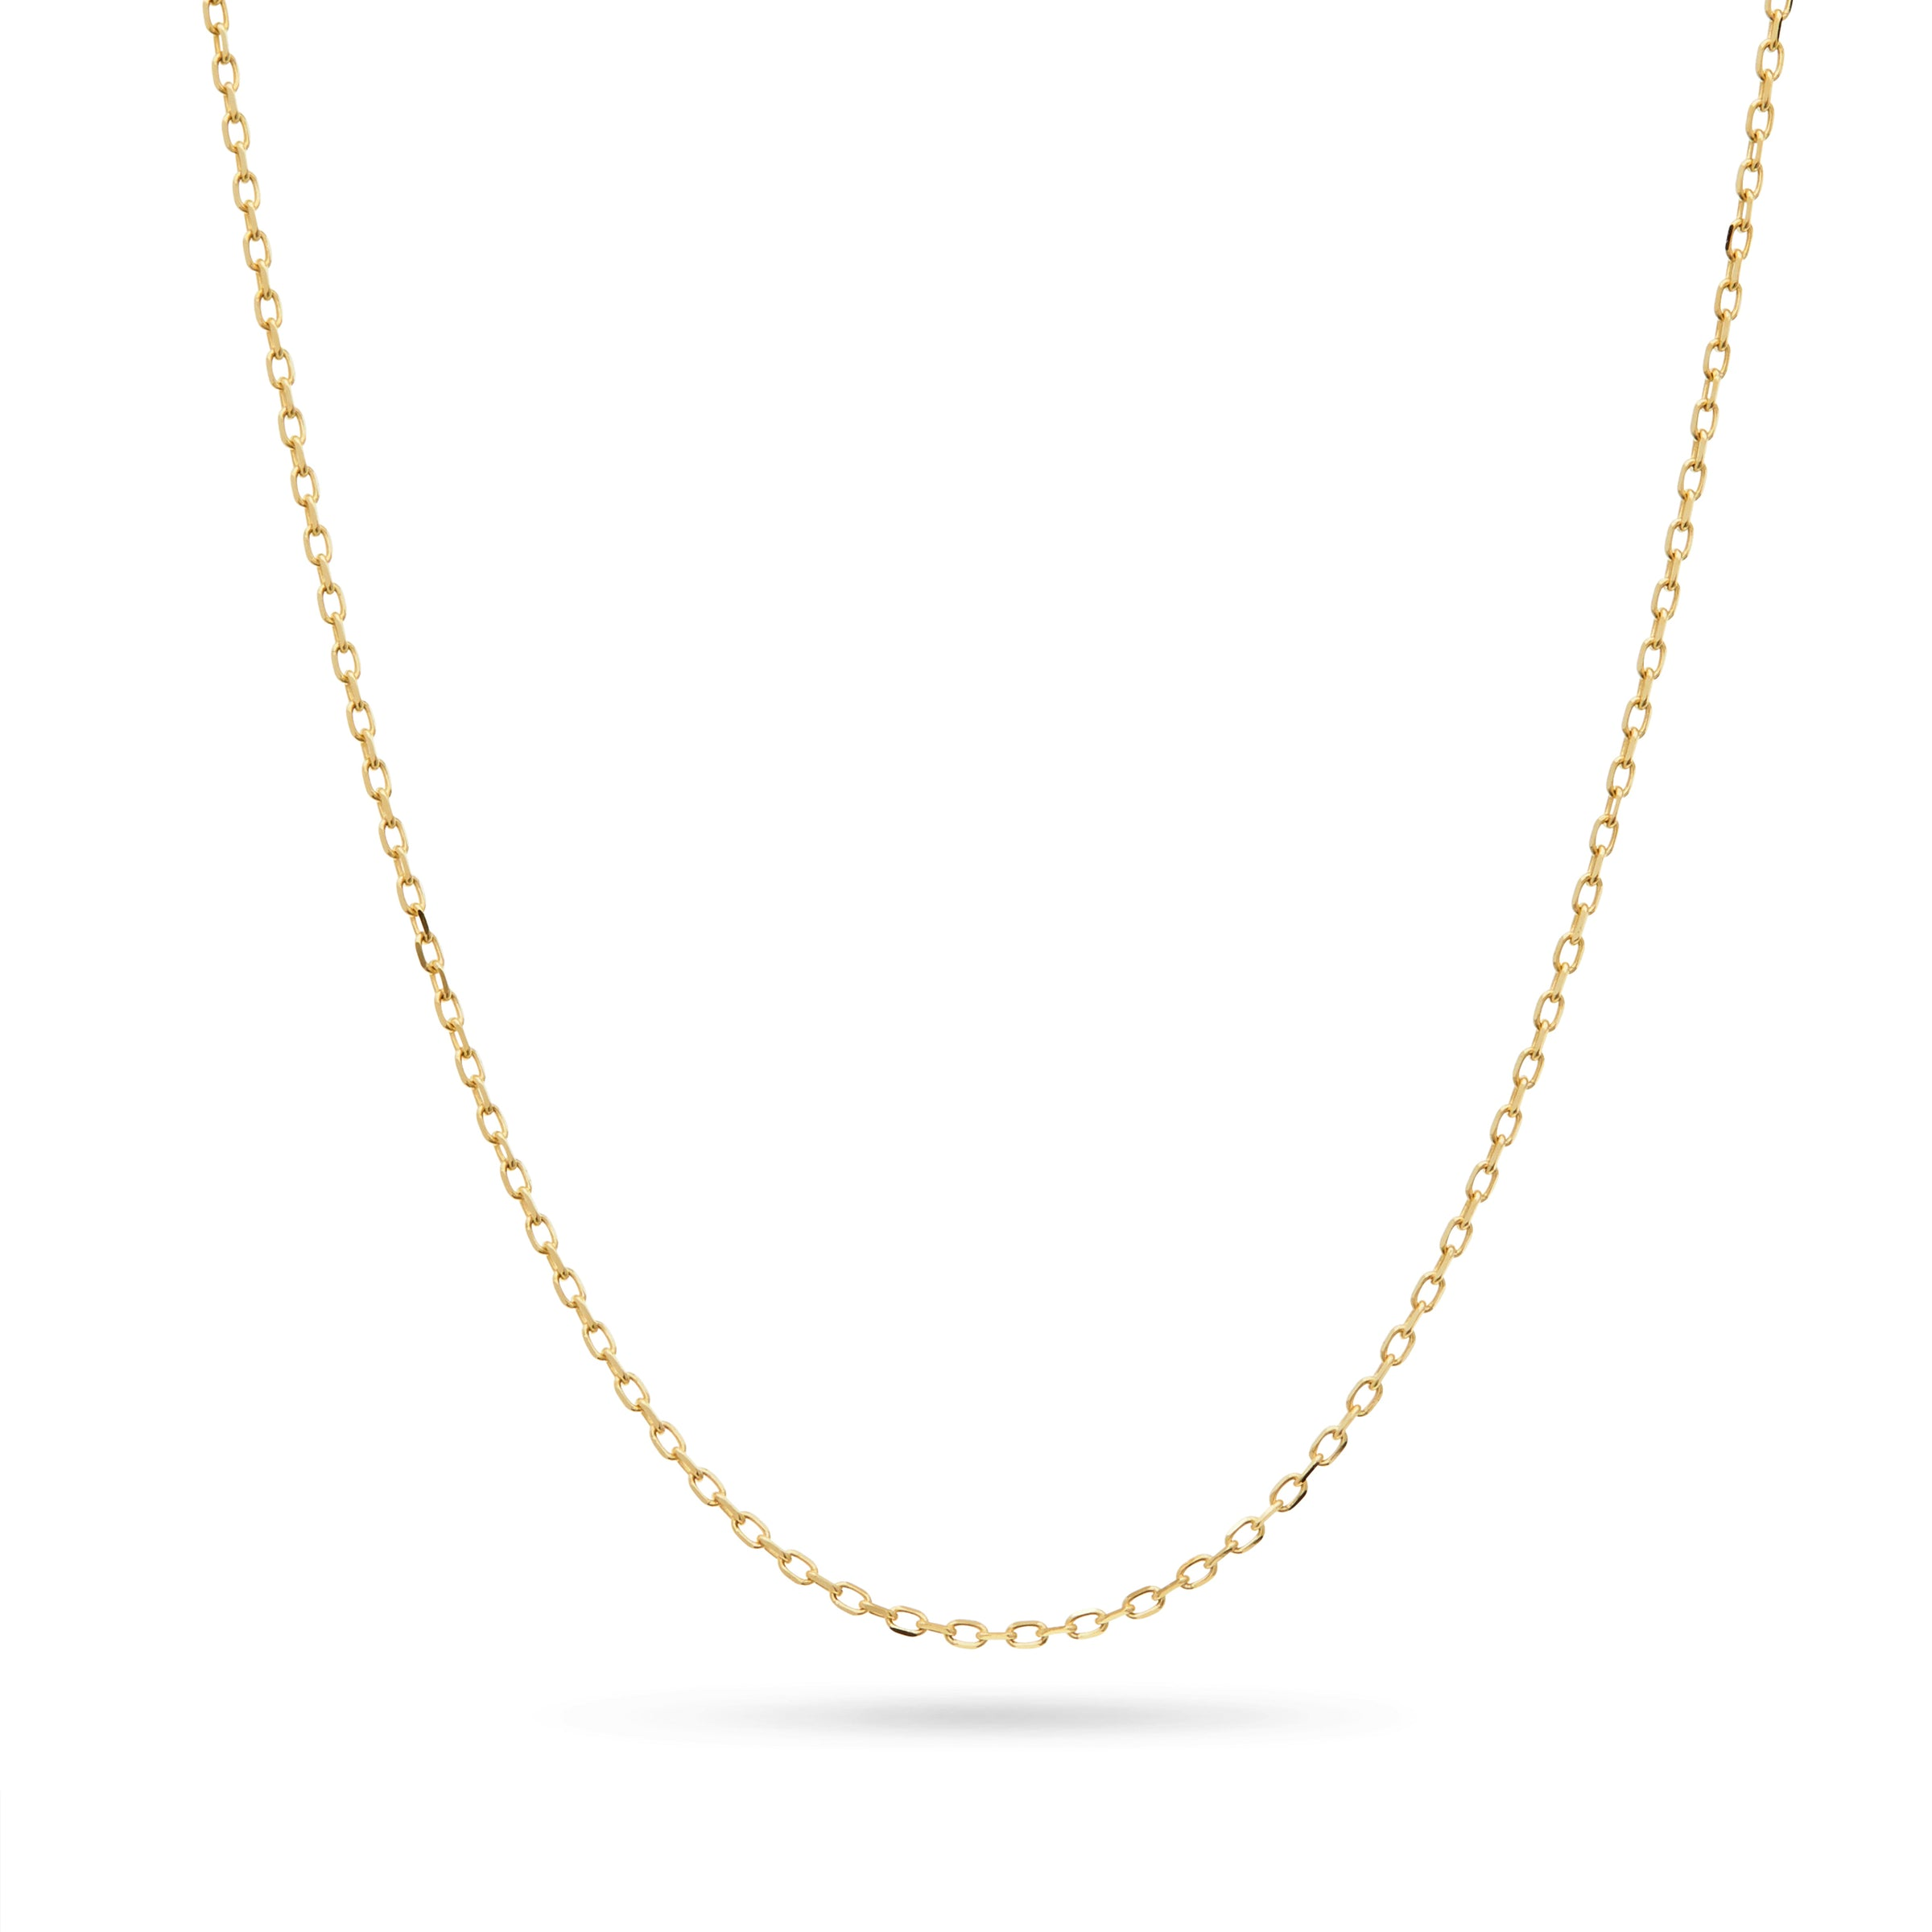 1.1mm Chain Necklace